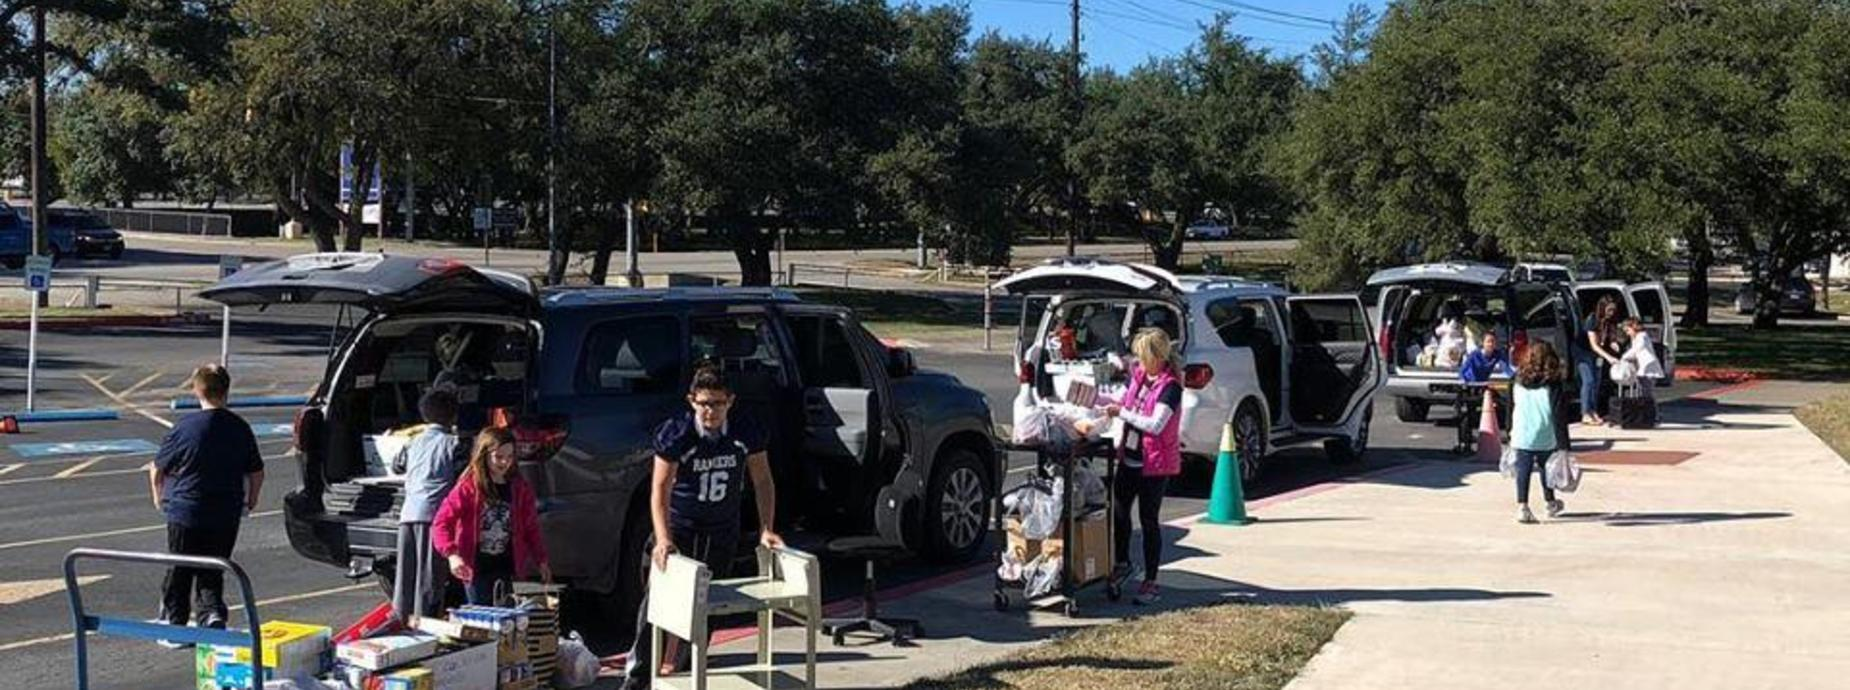 Students loading items into cars for delivery to Provisions Outreach